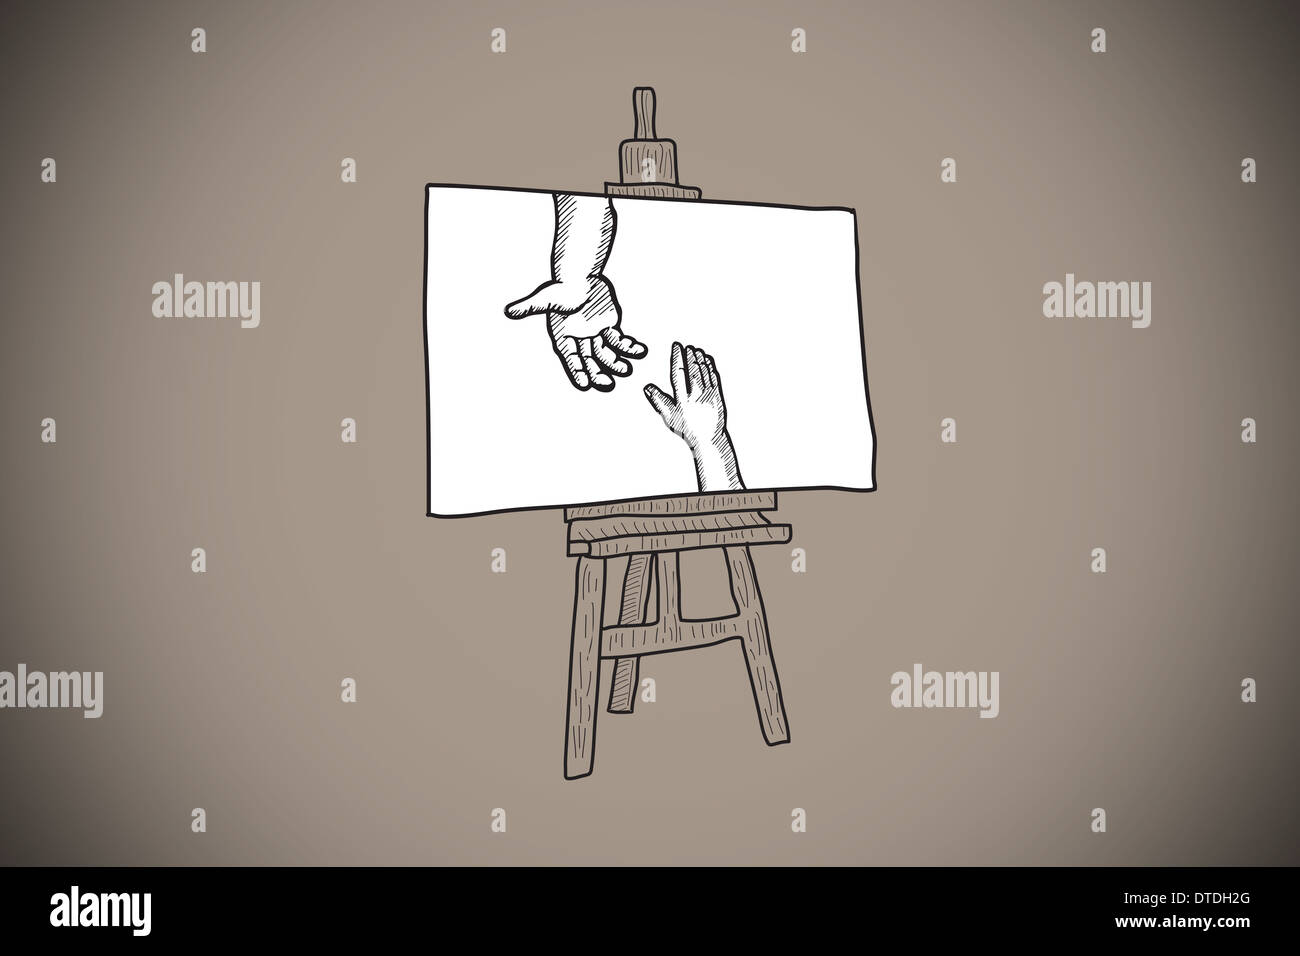 Composite image of hands joining doodle on easel - Stock Image